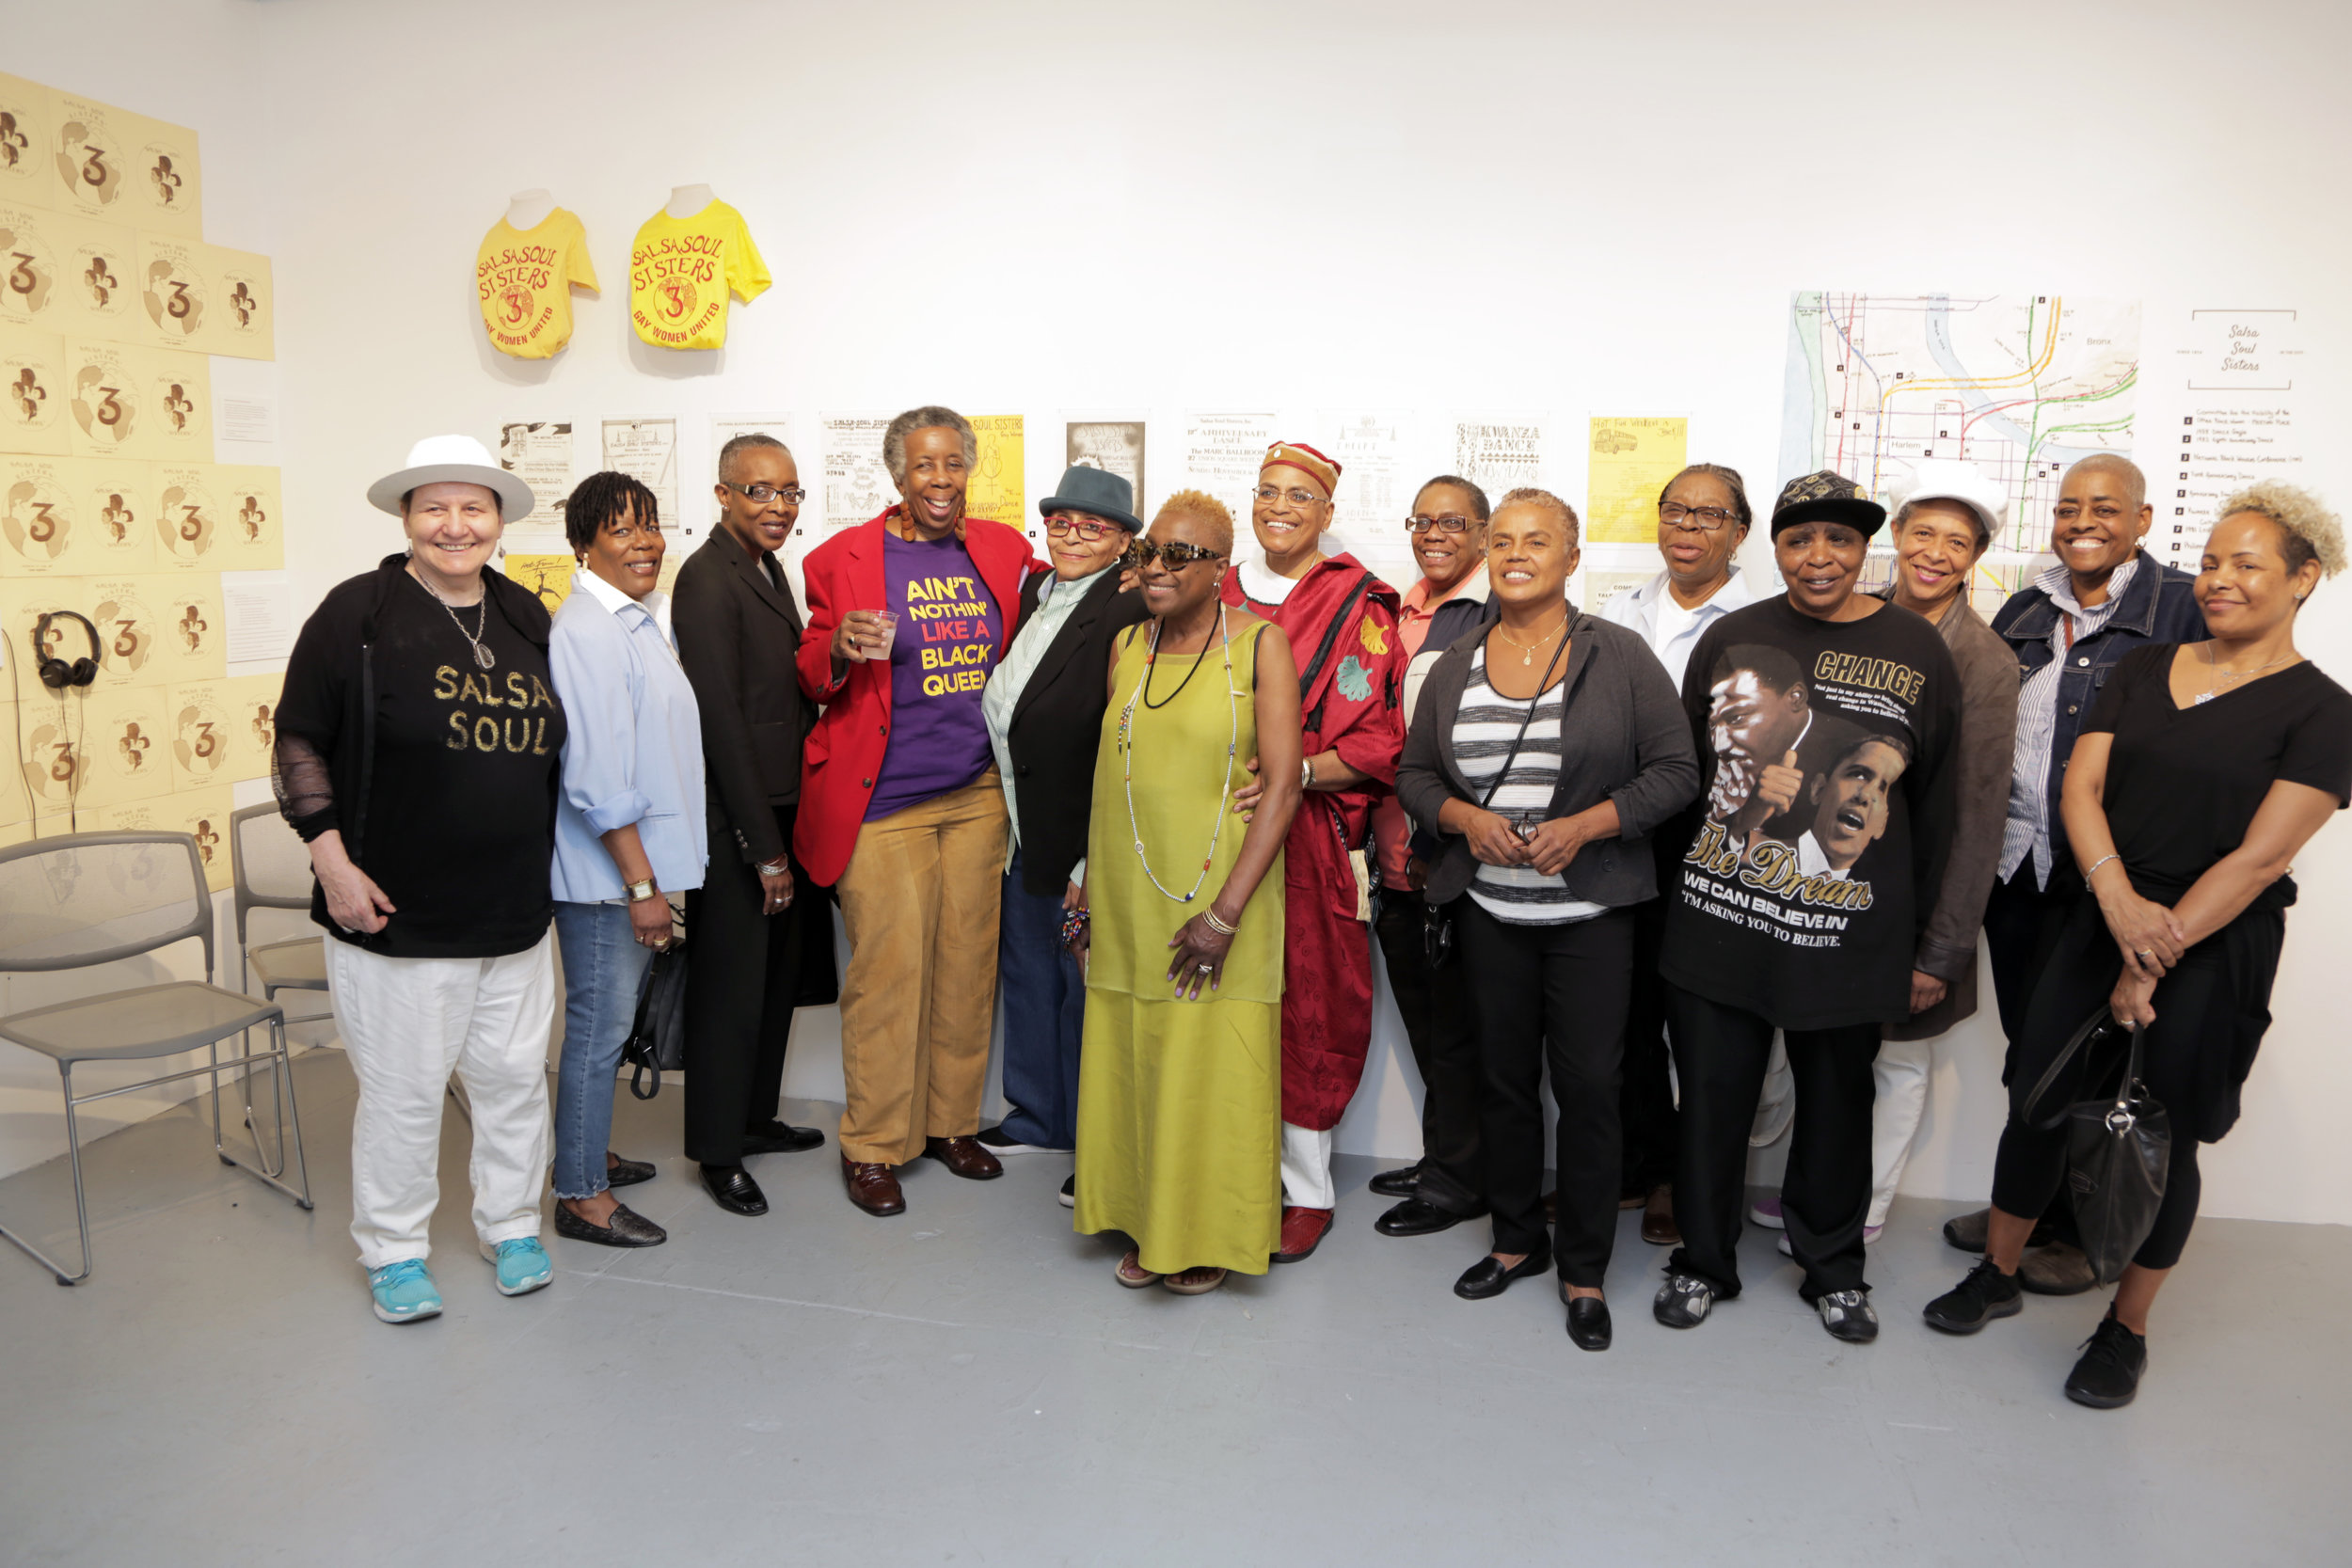 Salsa Soul Sisters Opening Reception   May 9, 2018